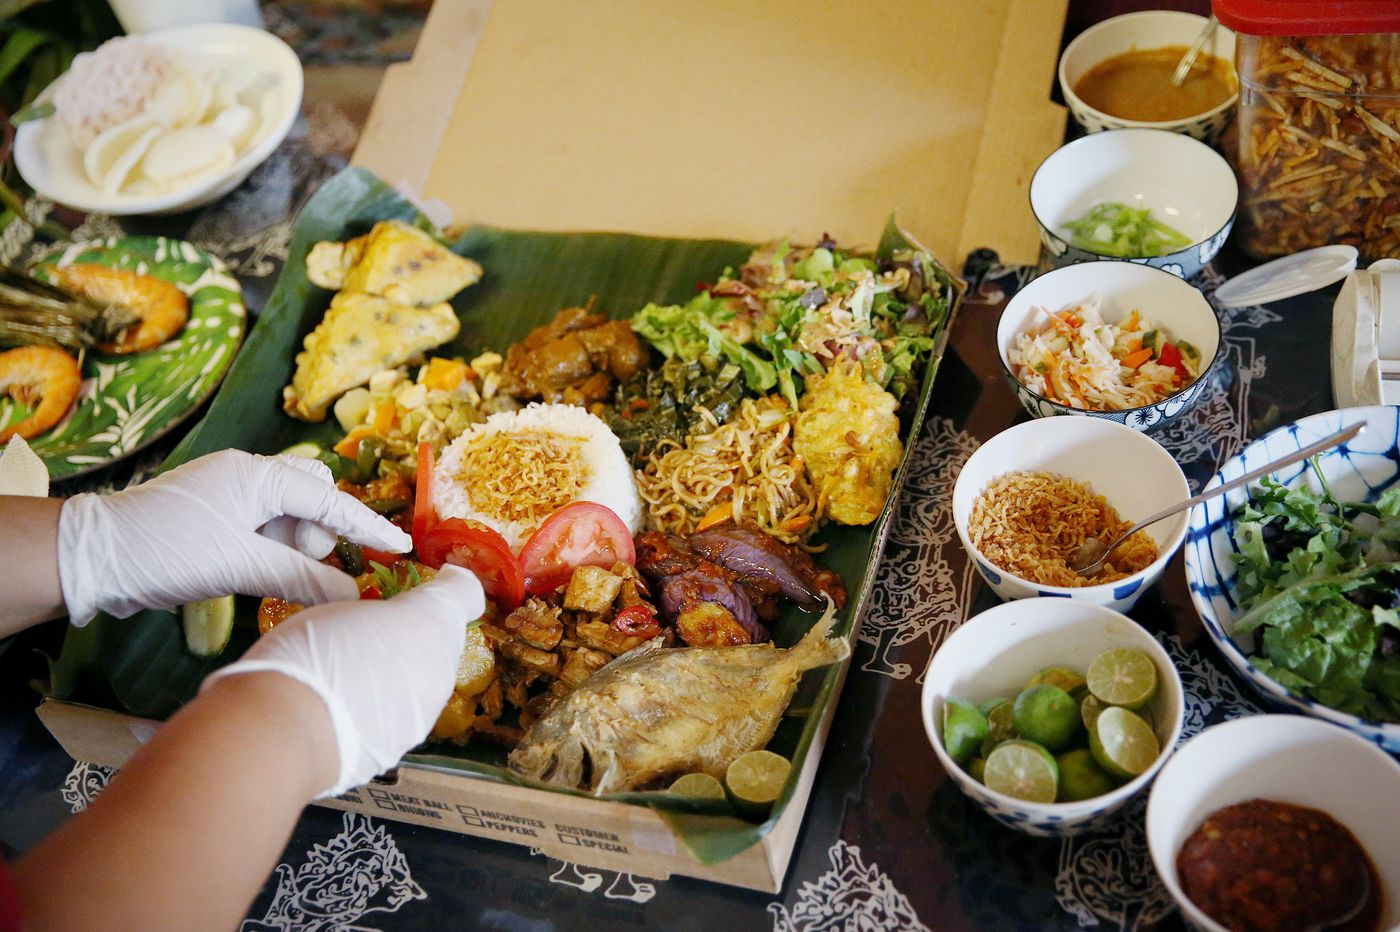 Hardena packs a treasure of Indonesian flavors into a box